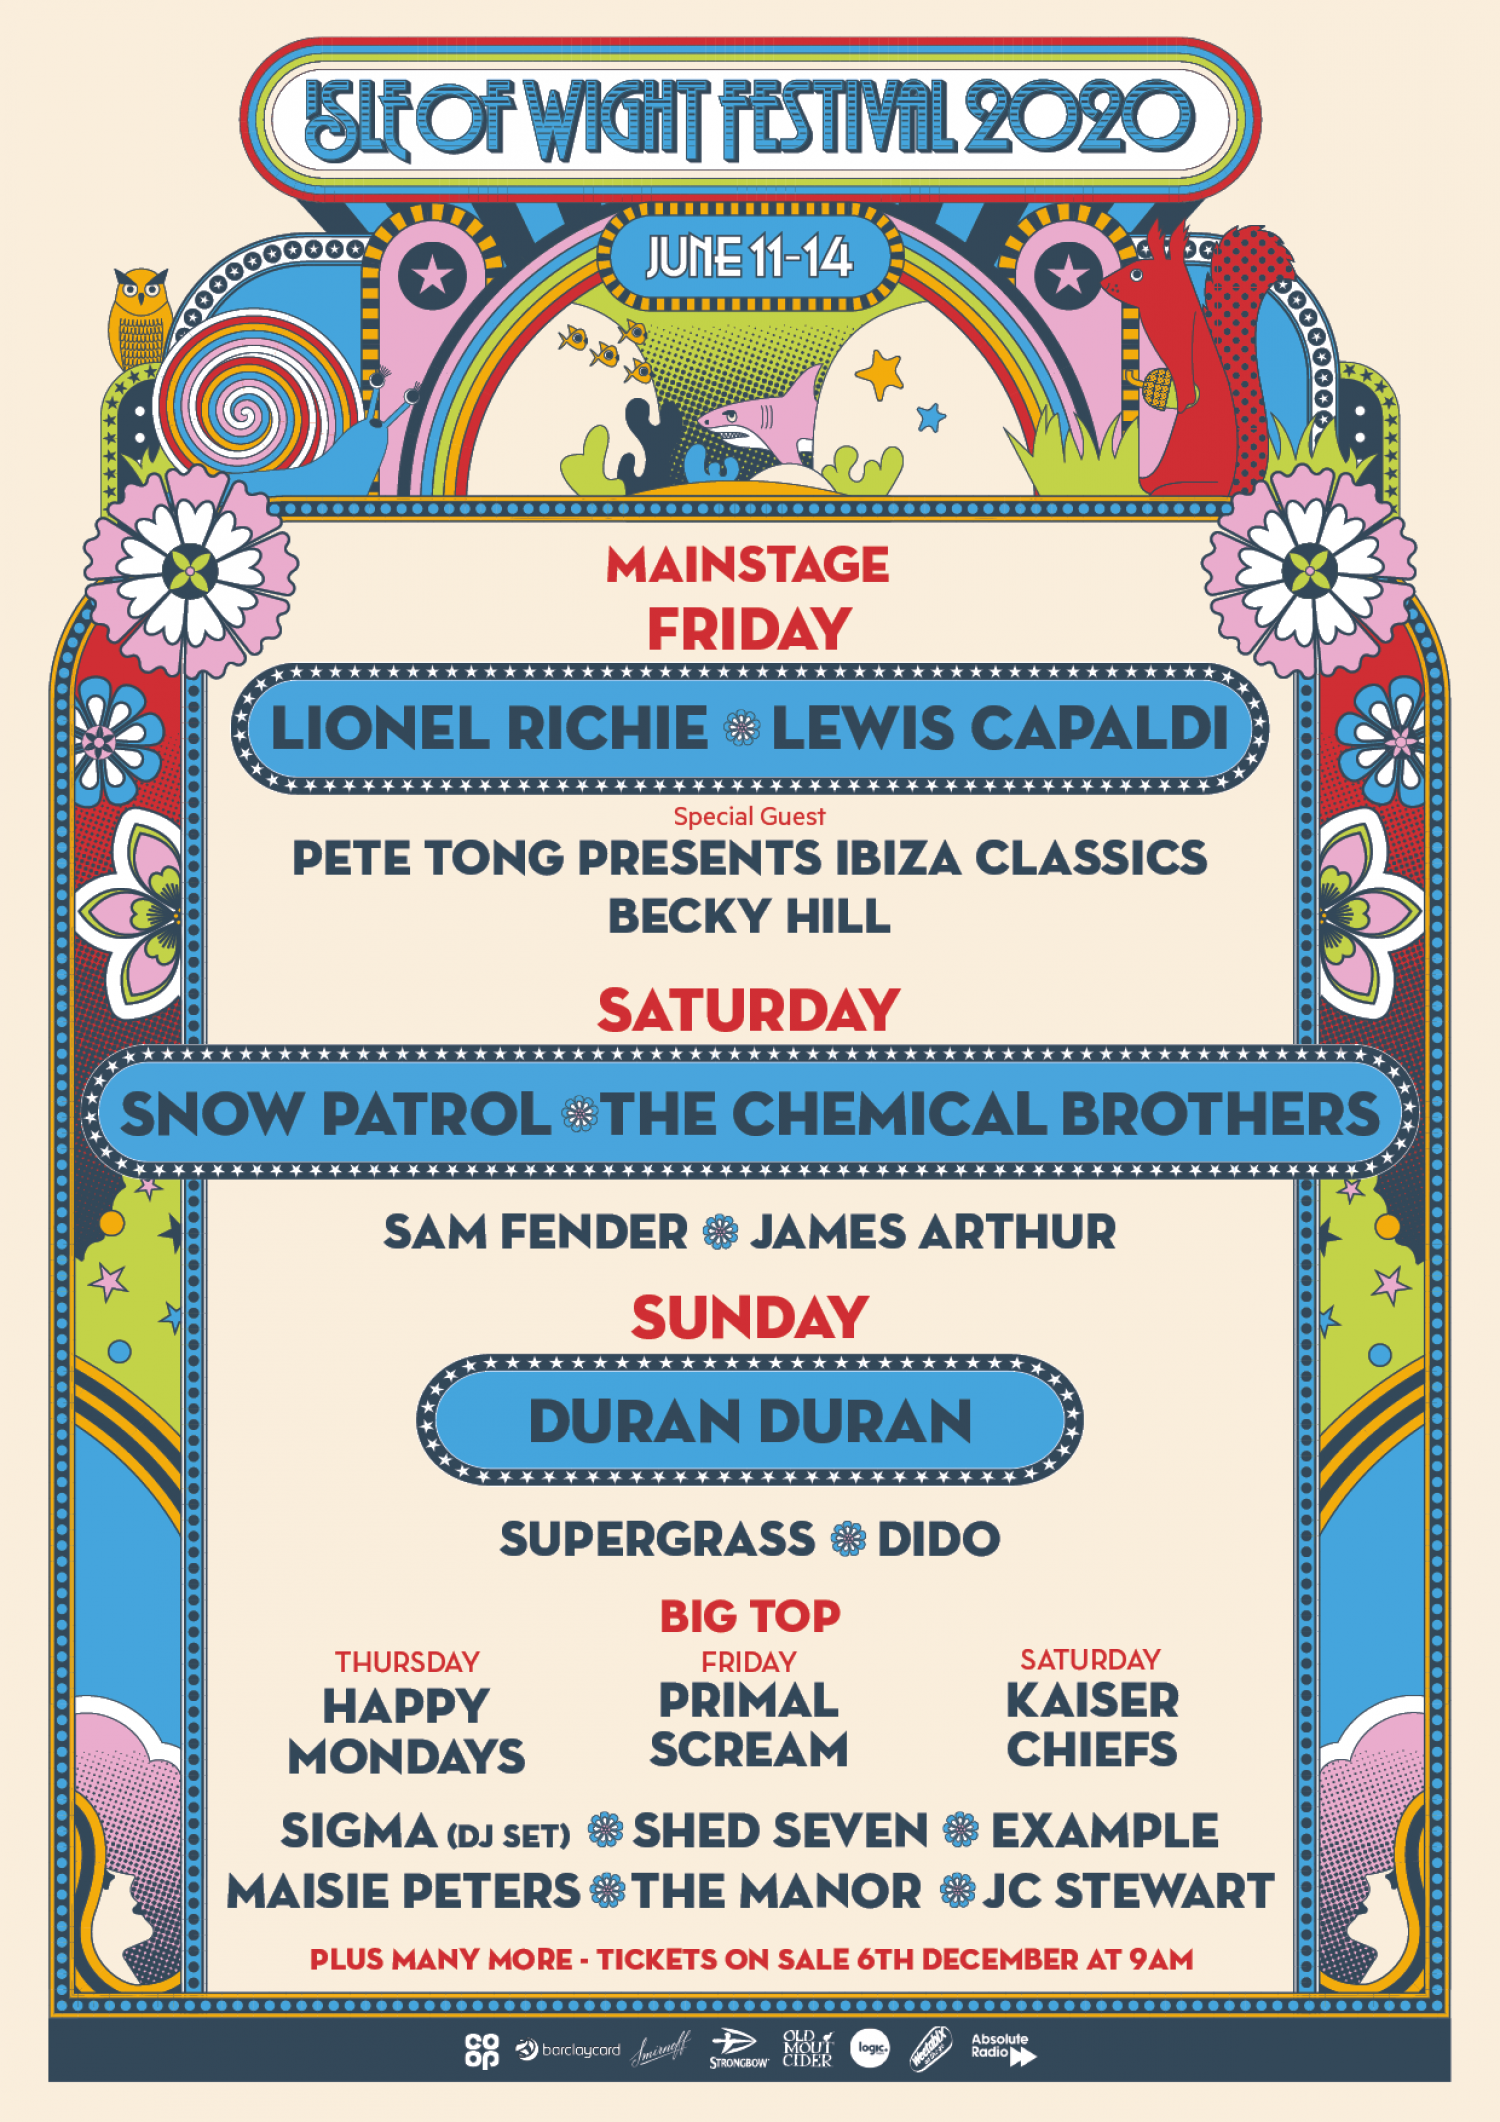 The Isle of Wight 2020 line up is here, and it's Quite Something